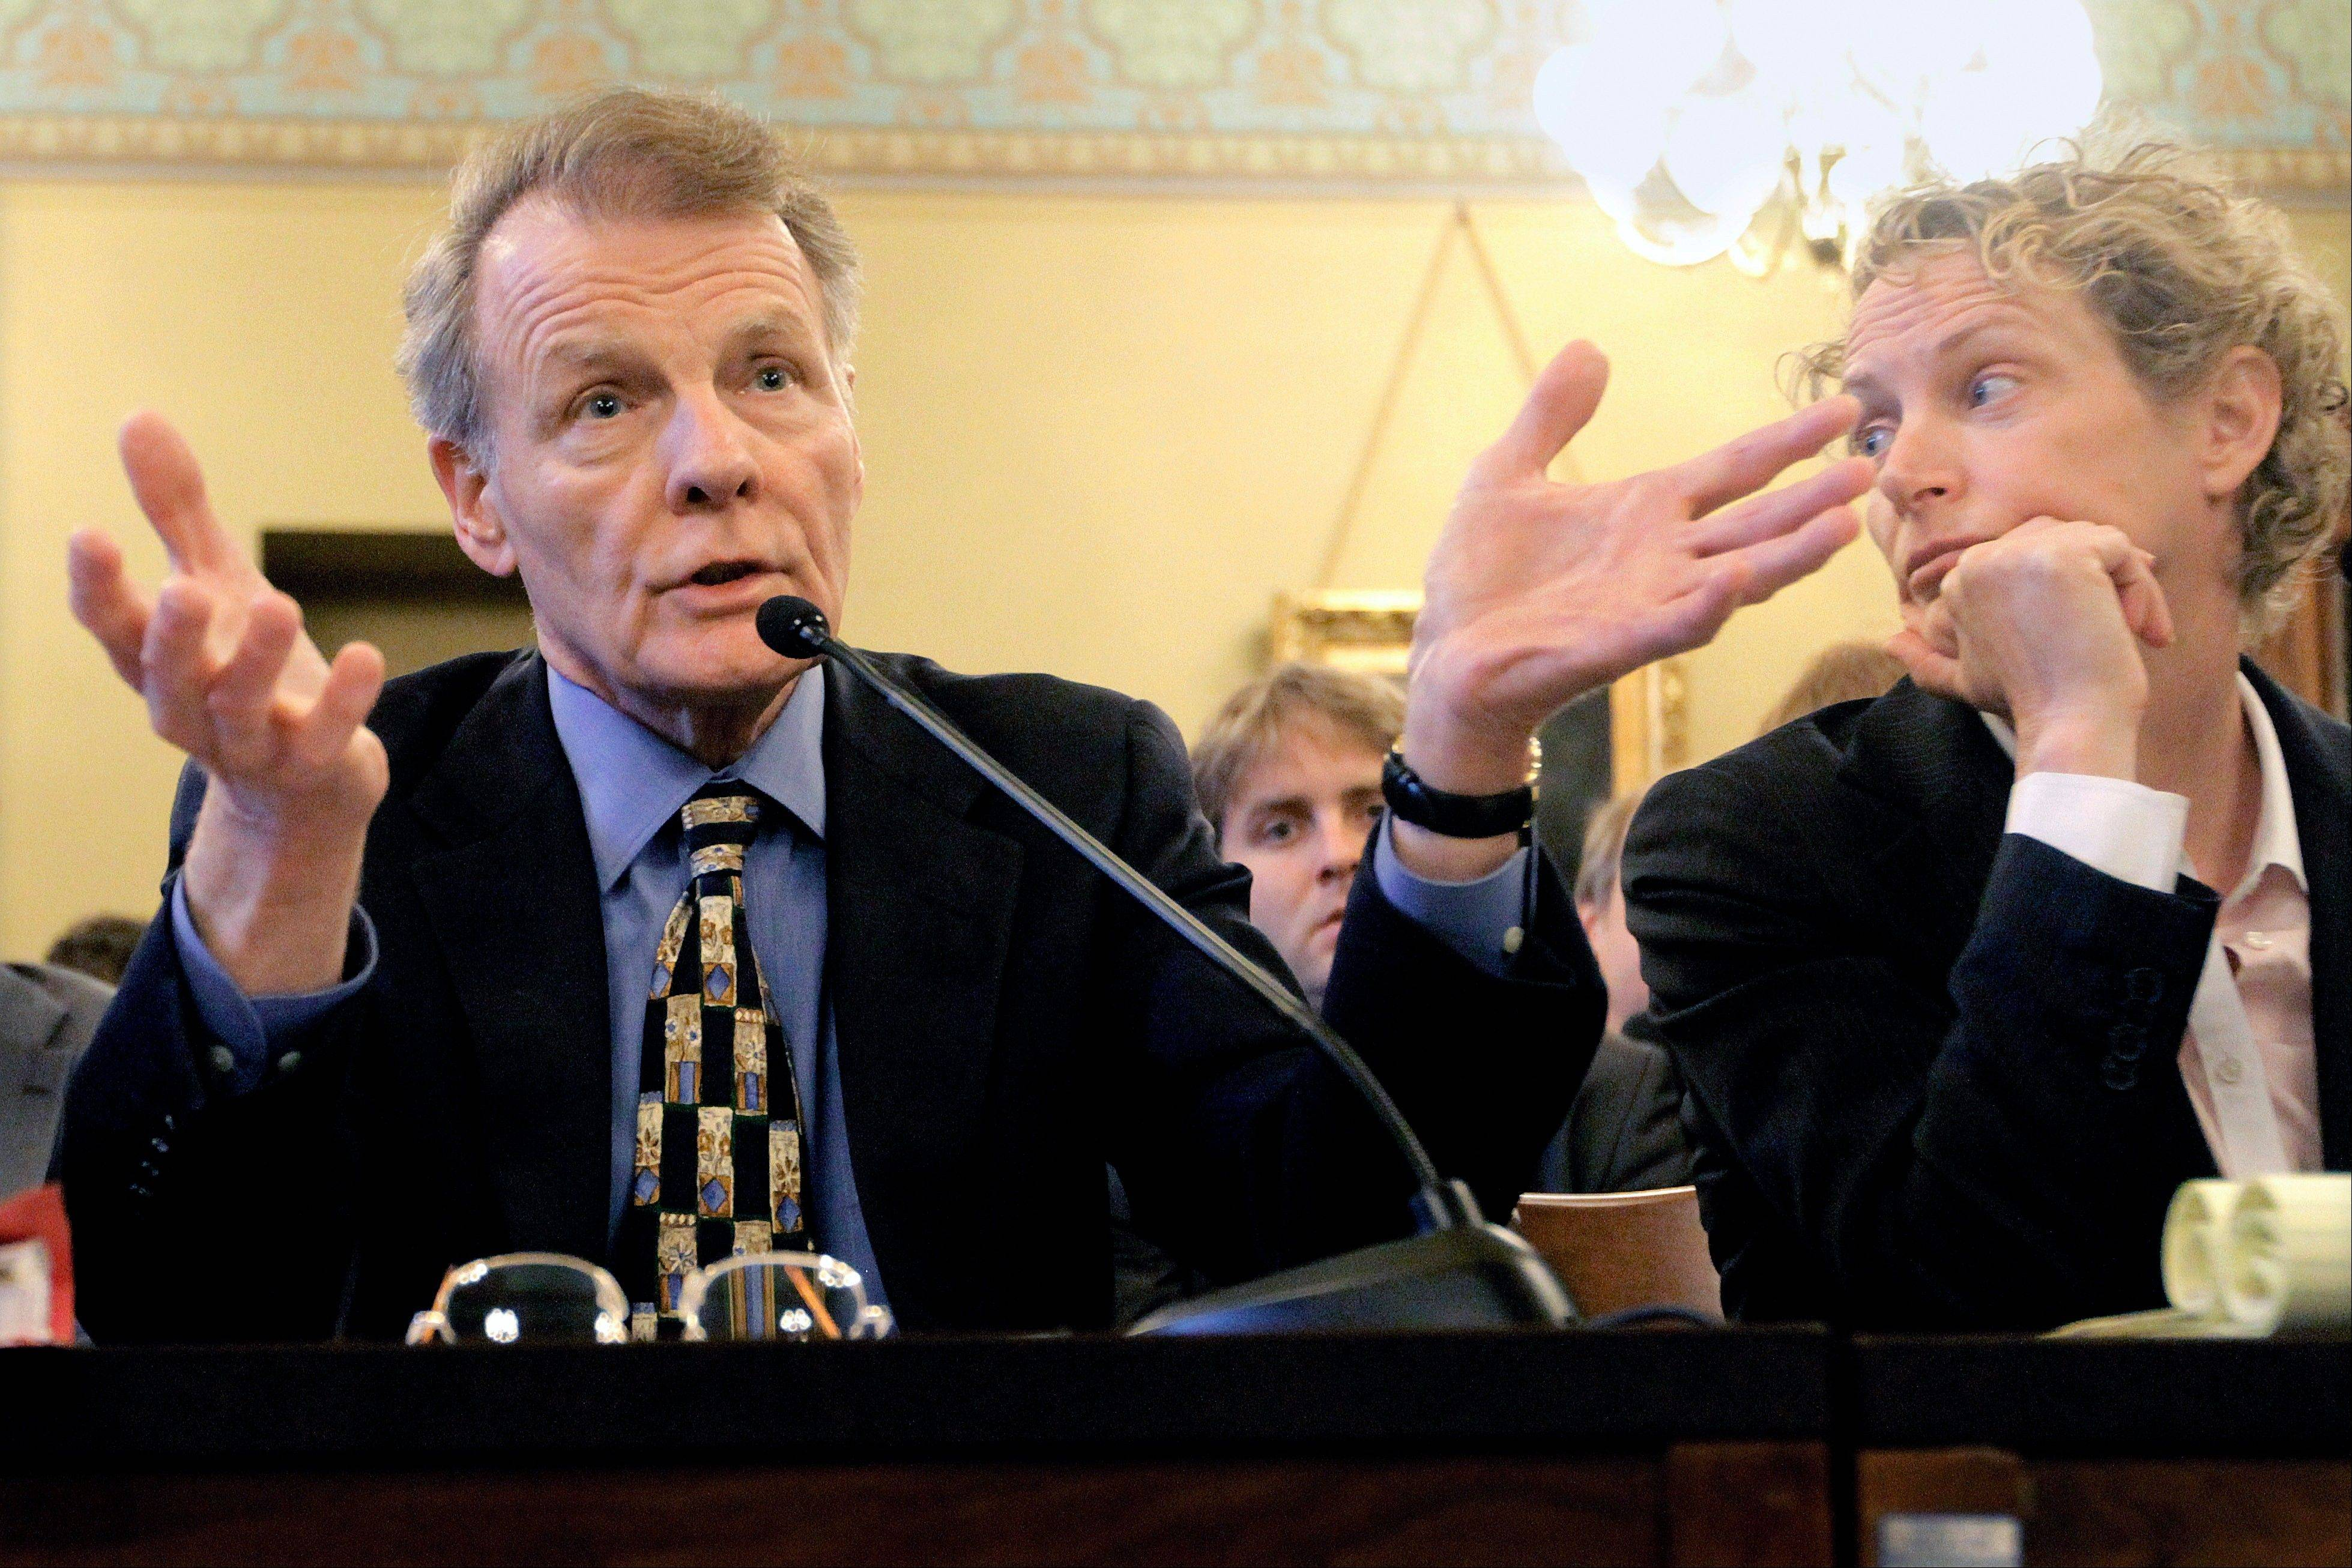 Illinois House Speaker Michael Madigan, left, testifies while Rep. Elaine Nekritz, of Northbrook, looks on during a hearing in May.